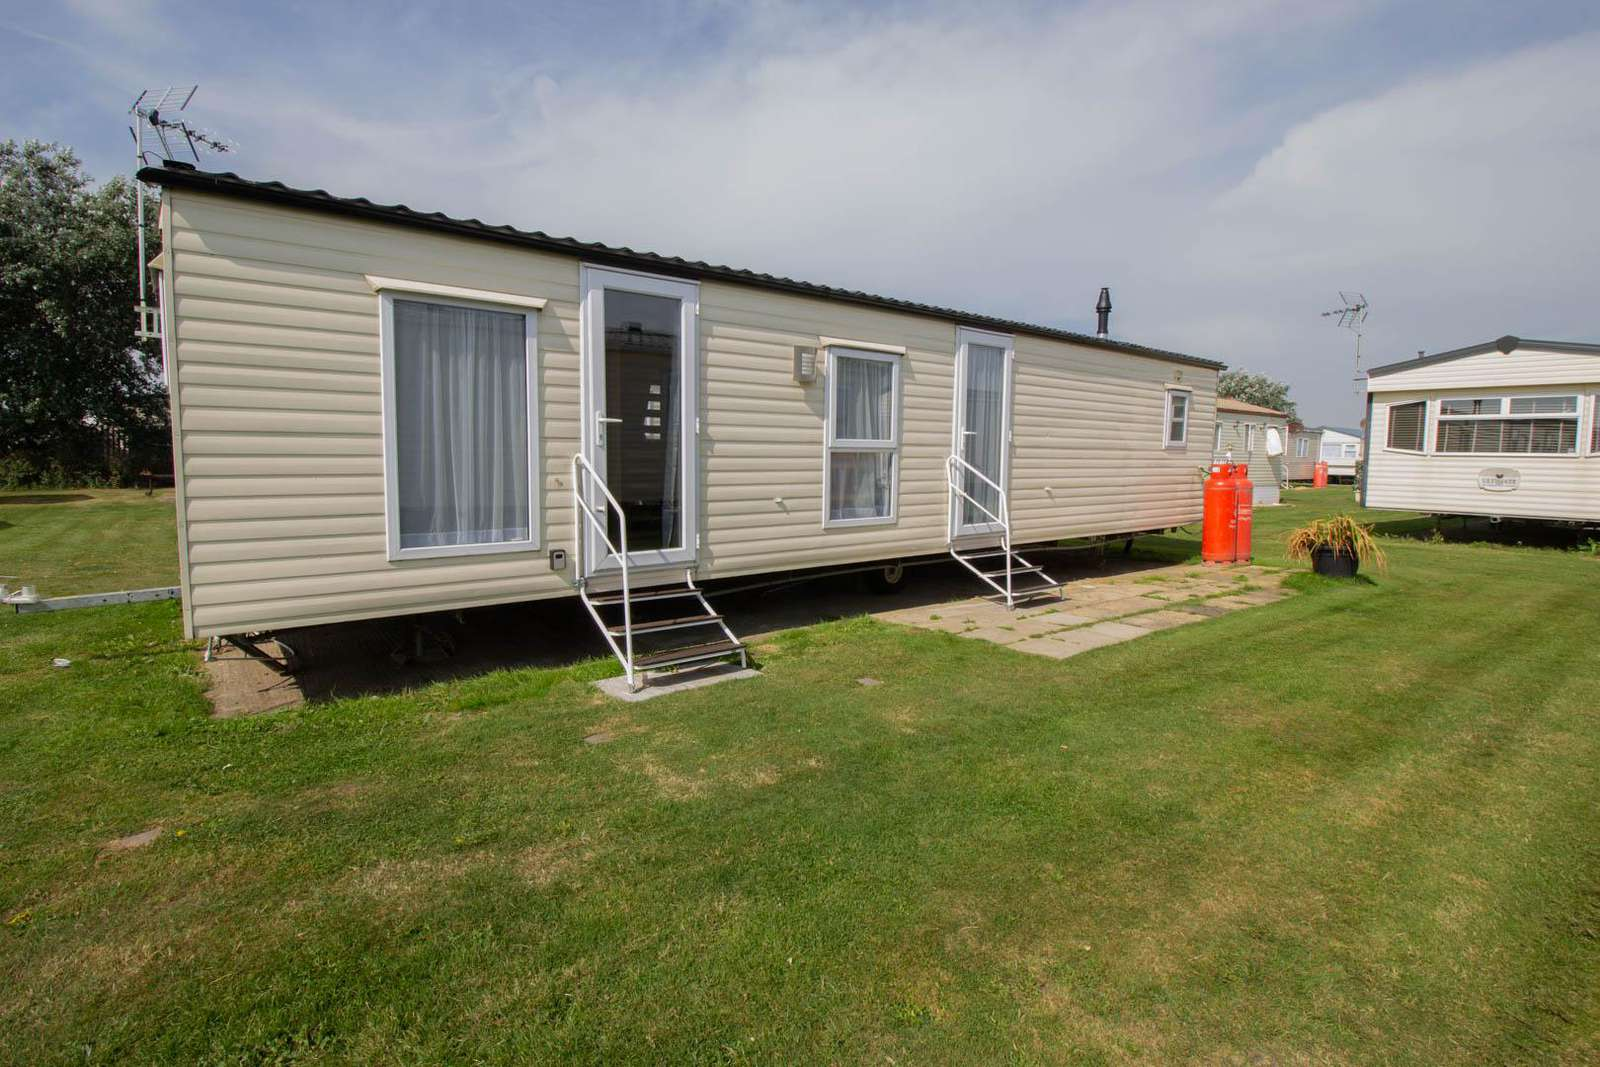 28026CW – Constable Way, 3 bed, 8 berth caravan with D/G & C/H. Ruby rated. - property